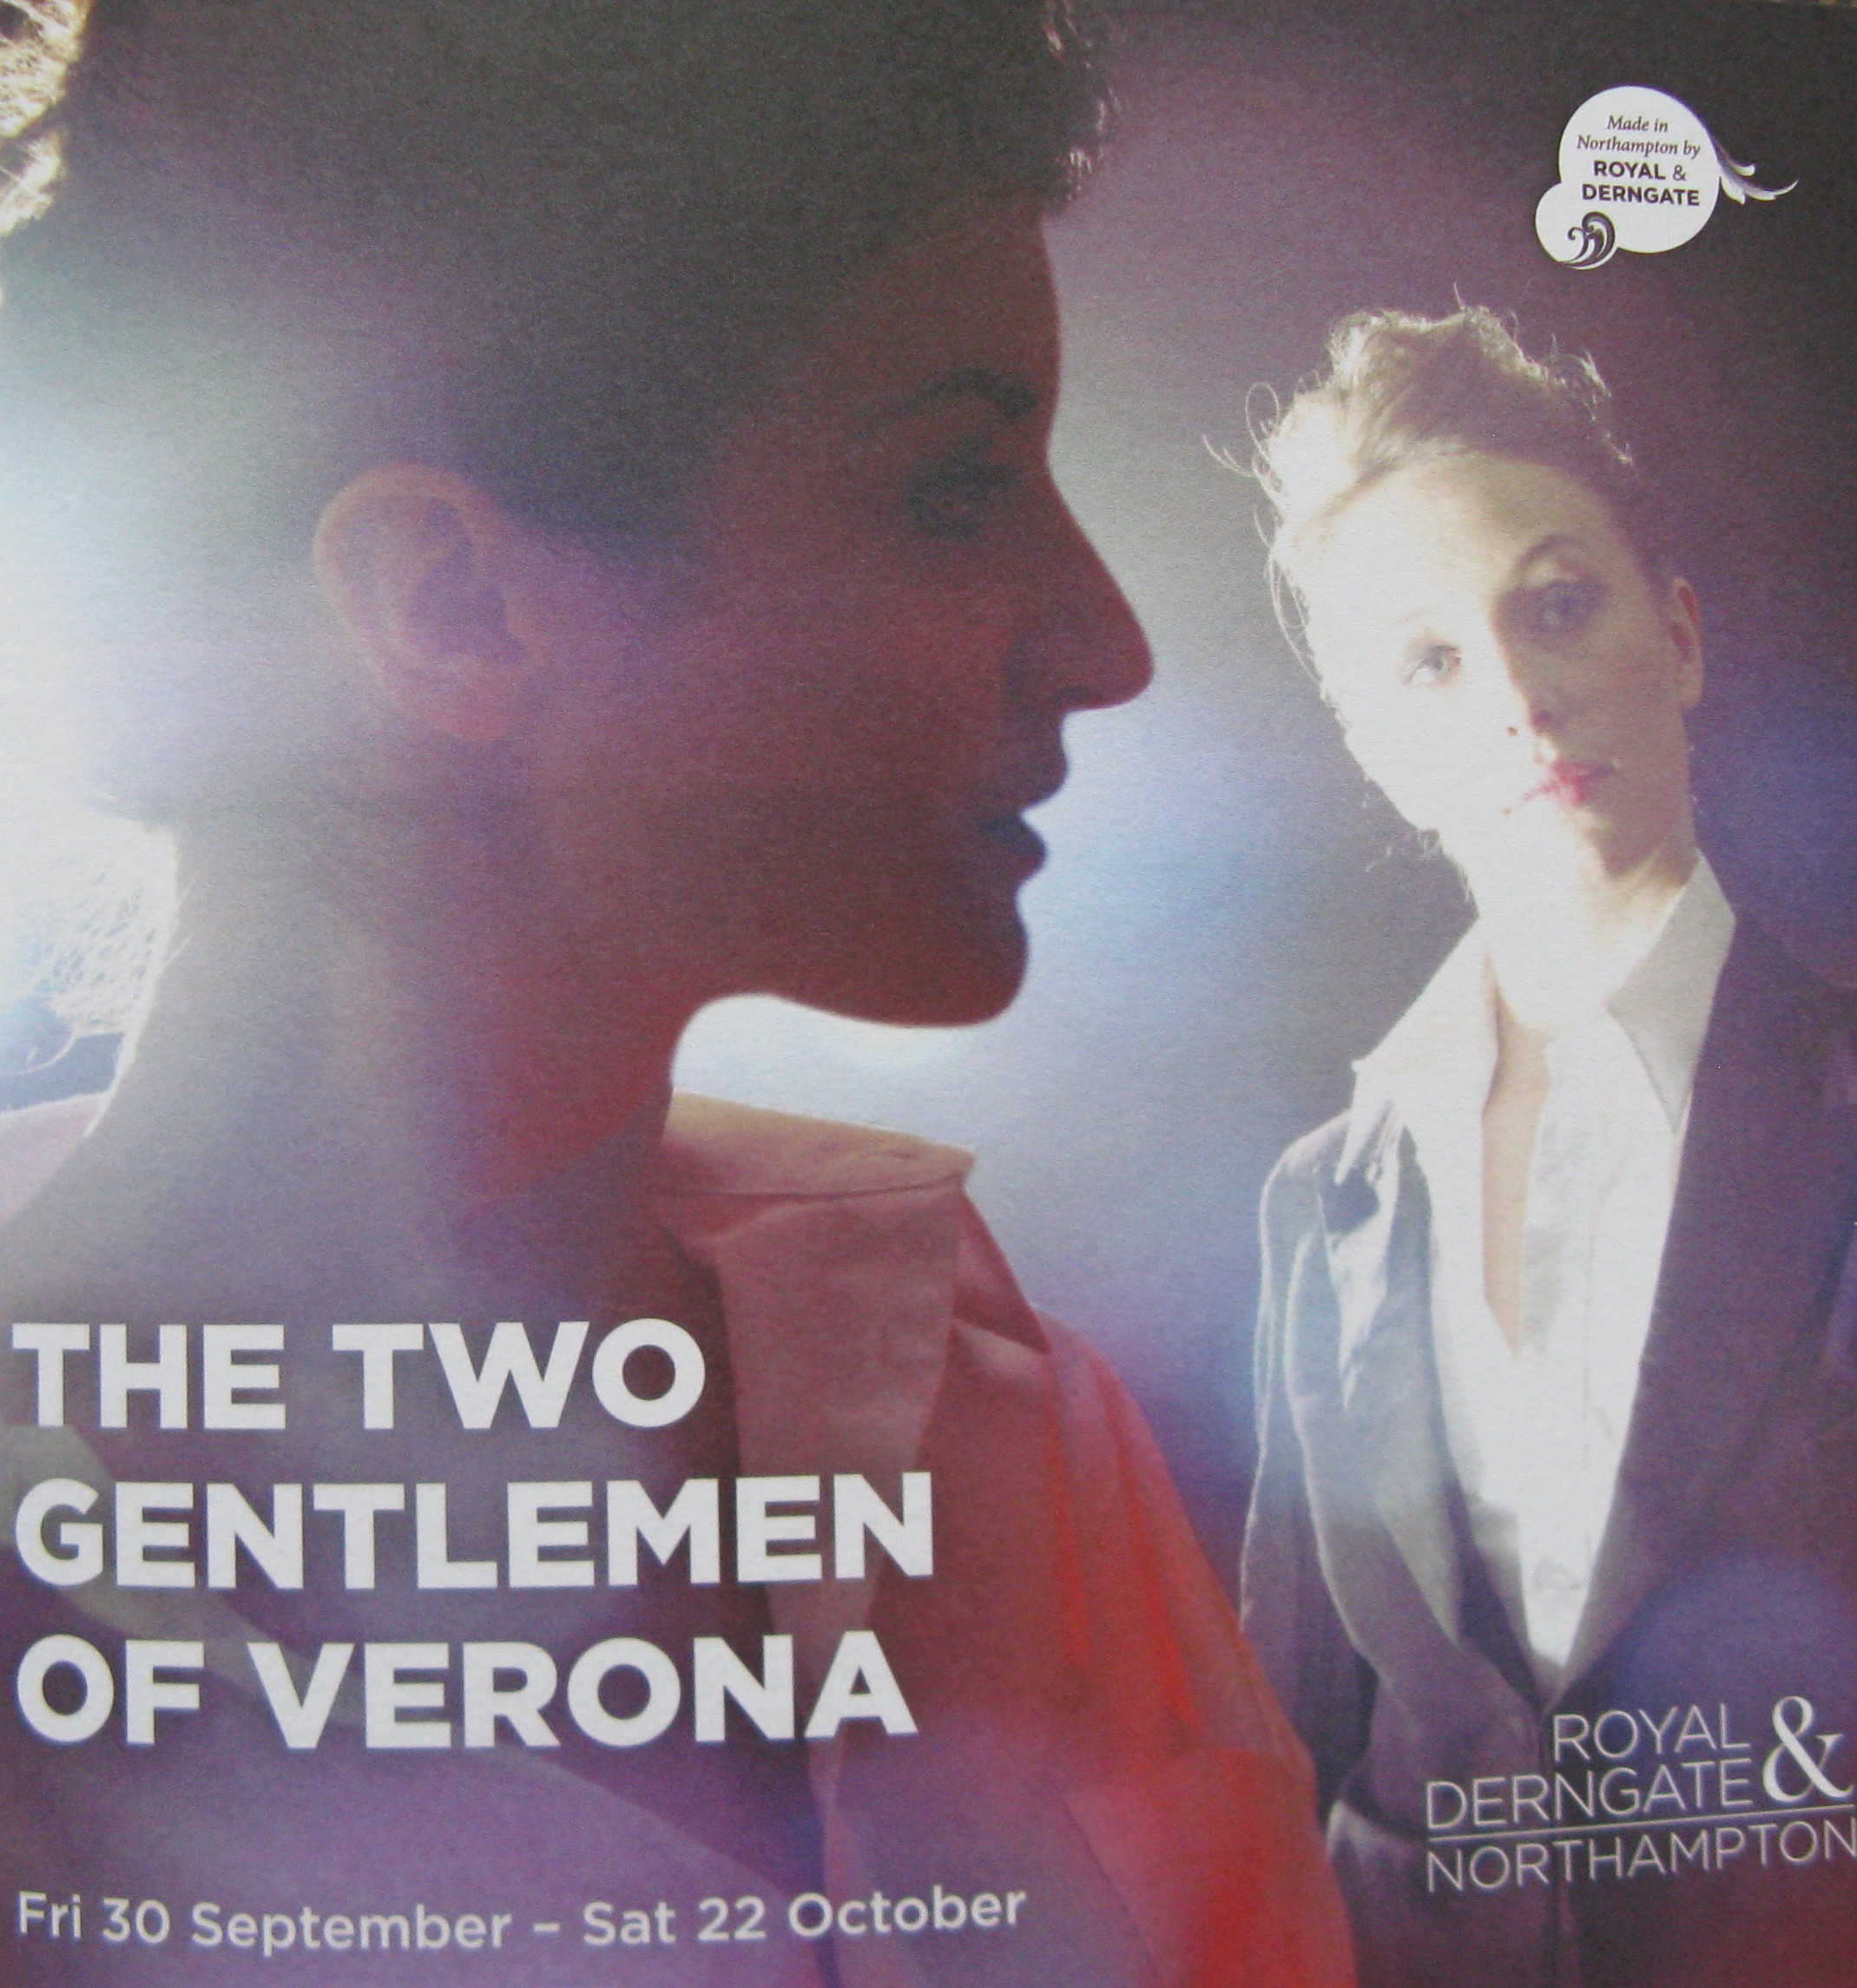 two gentlemen of verona The two gentlemen of verona is a play by william shakespeare that was first published in 1623.